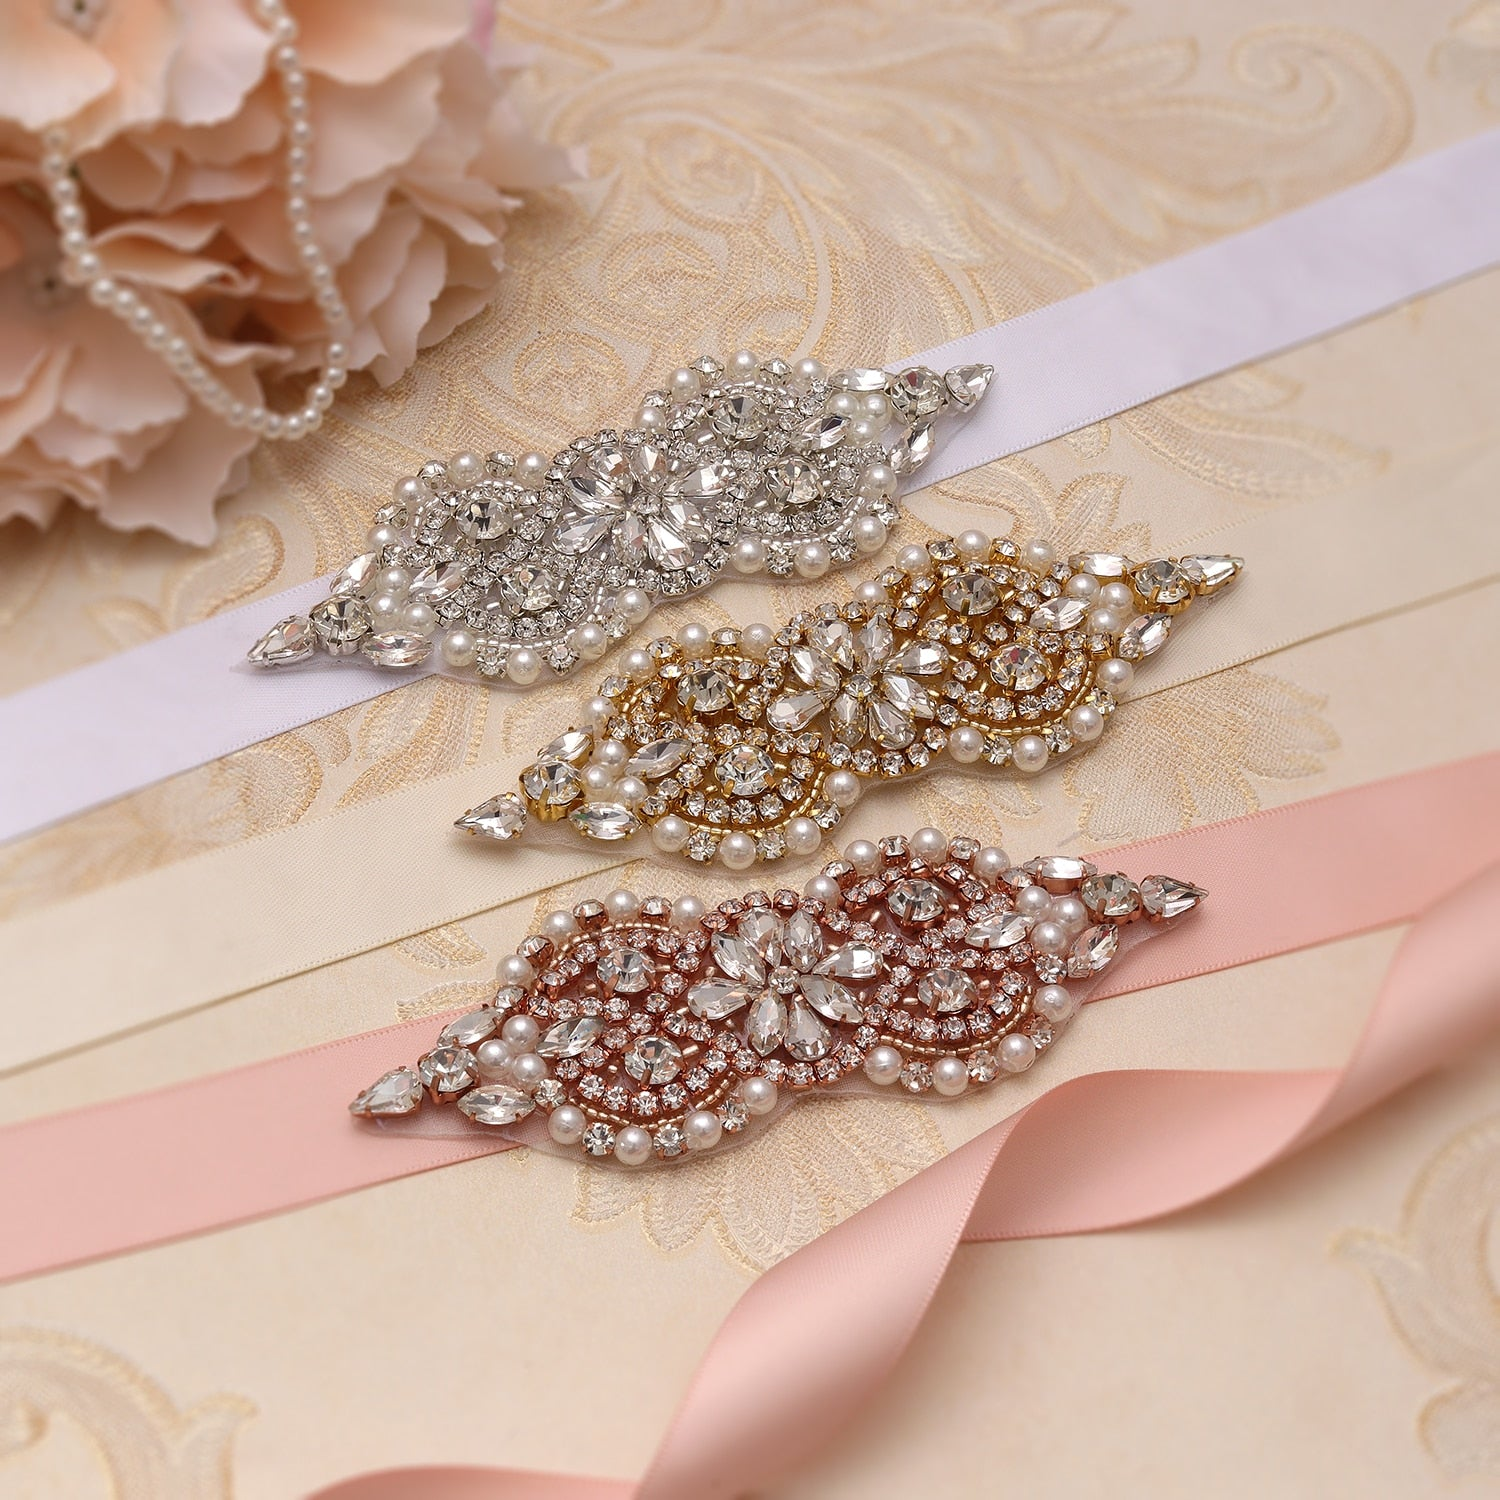 MissRDress Handmade Bridal Belt Silver Crystal Bridal Sash Rhinestones Pearls Wedding Belt And Sash For Wedding Dresses JK932 - Smoulder Products